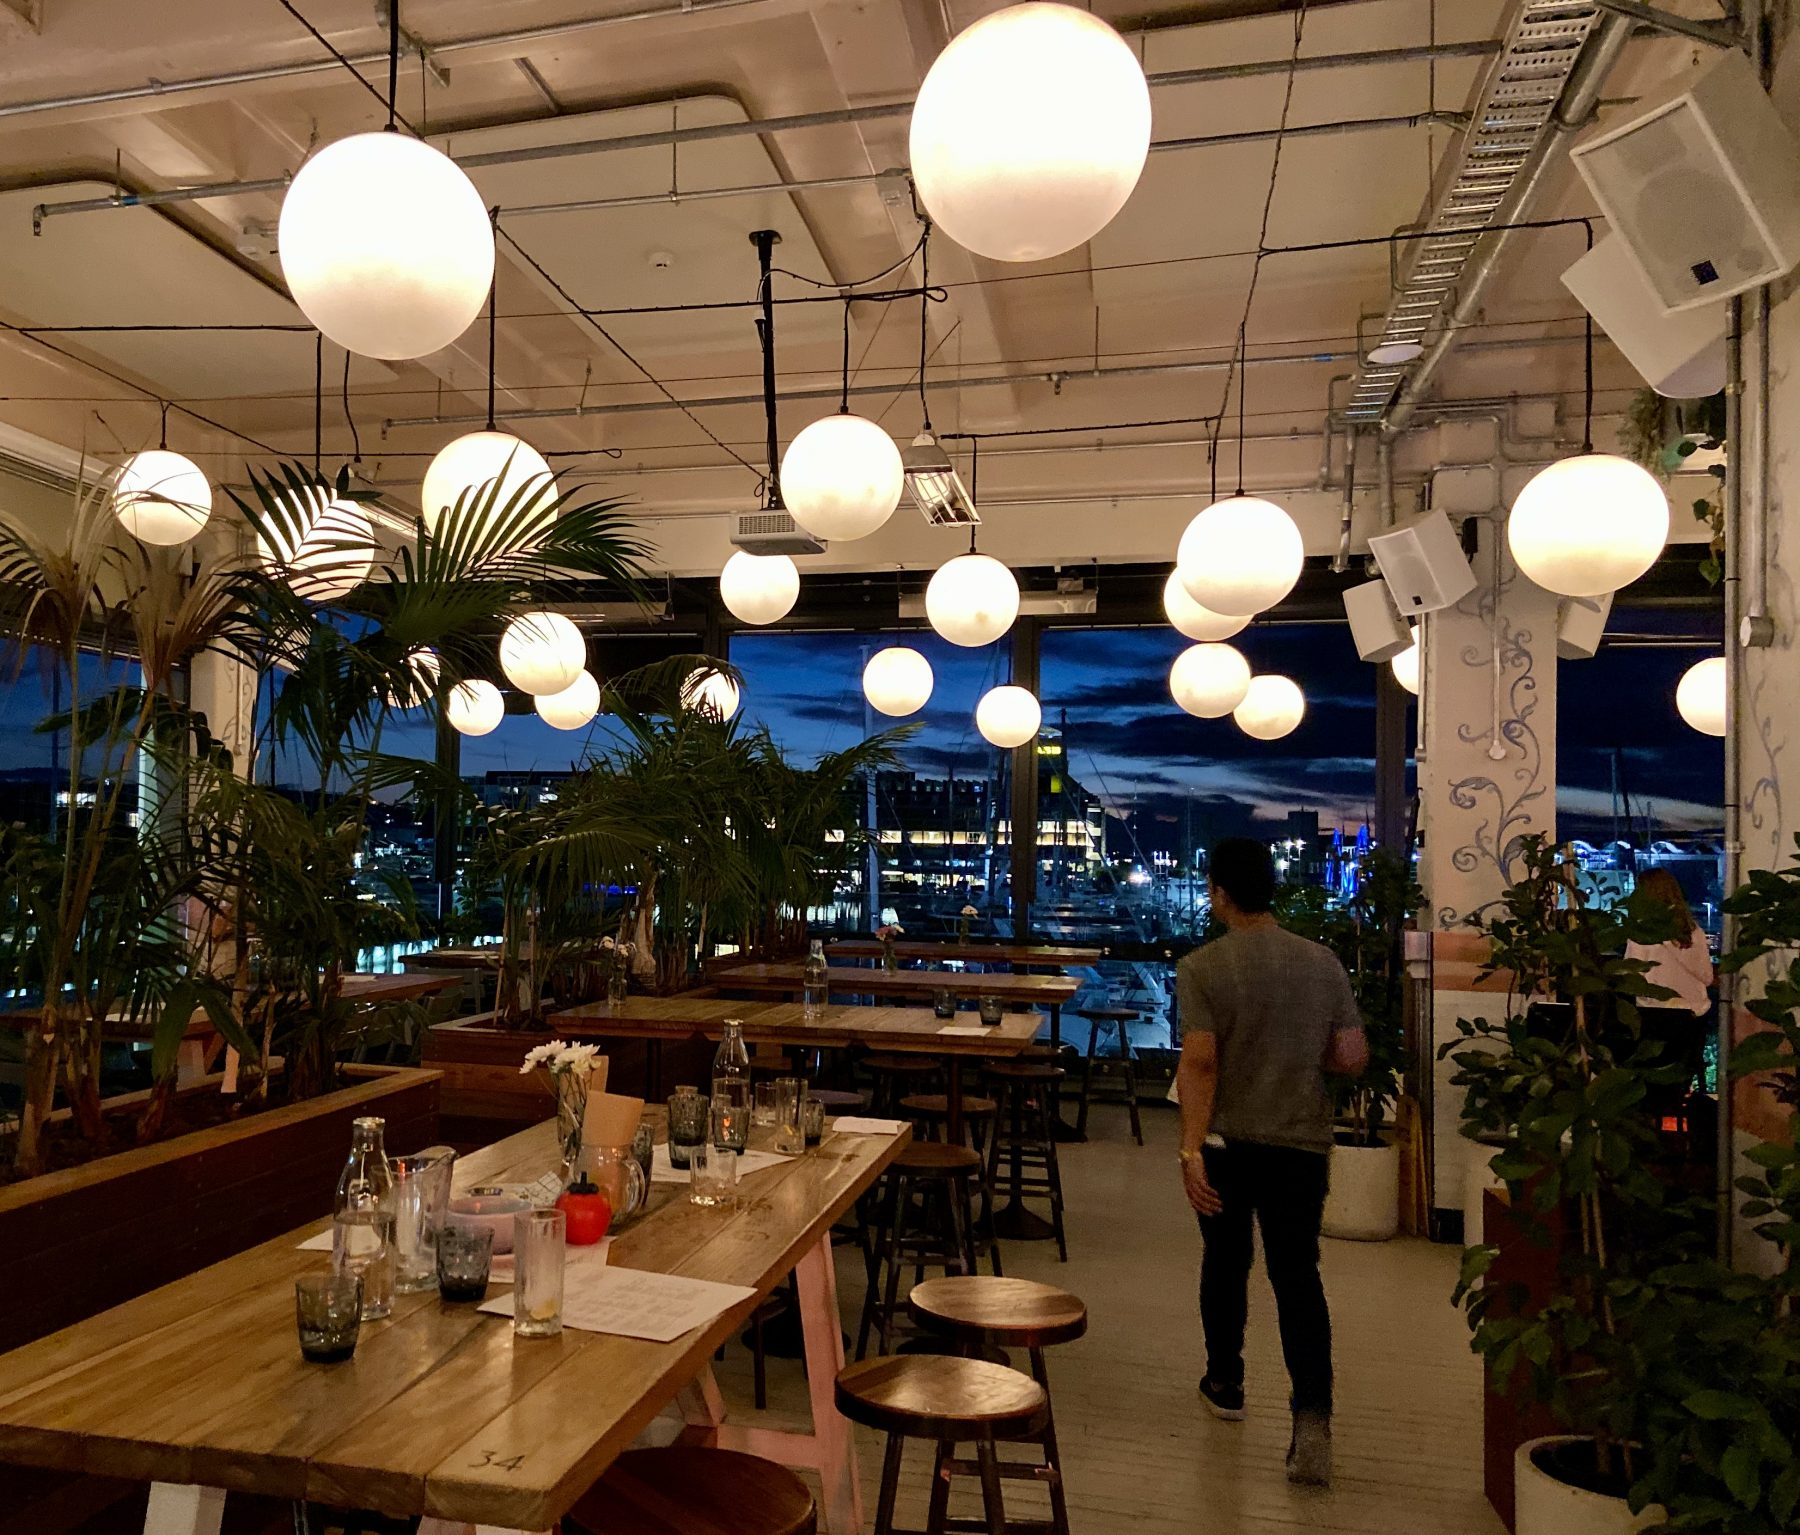 Saint Alice Tables - Viaduct Harbour (Auckland) - Where To Go